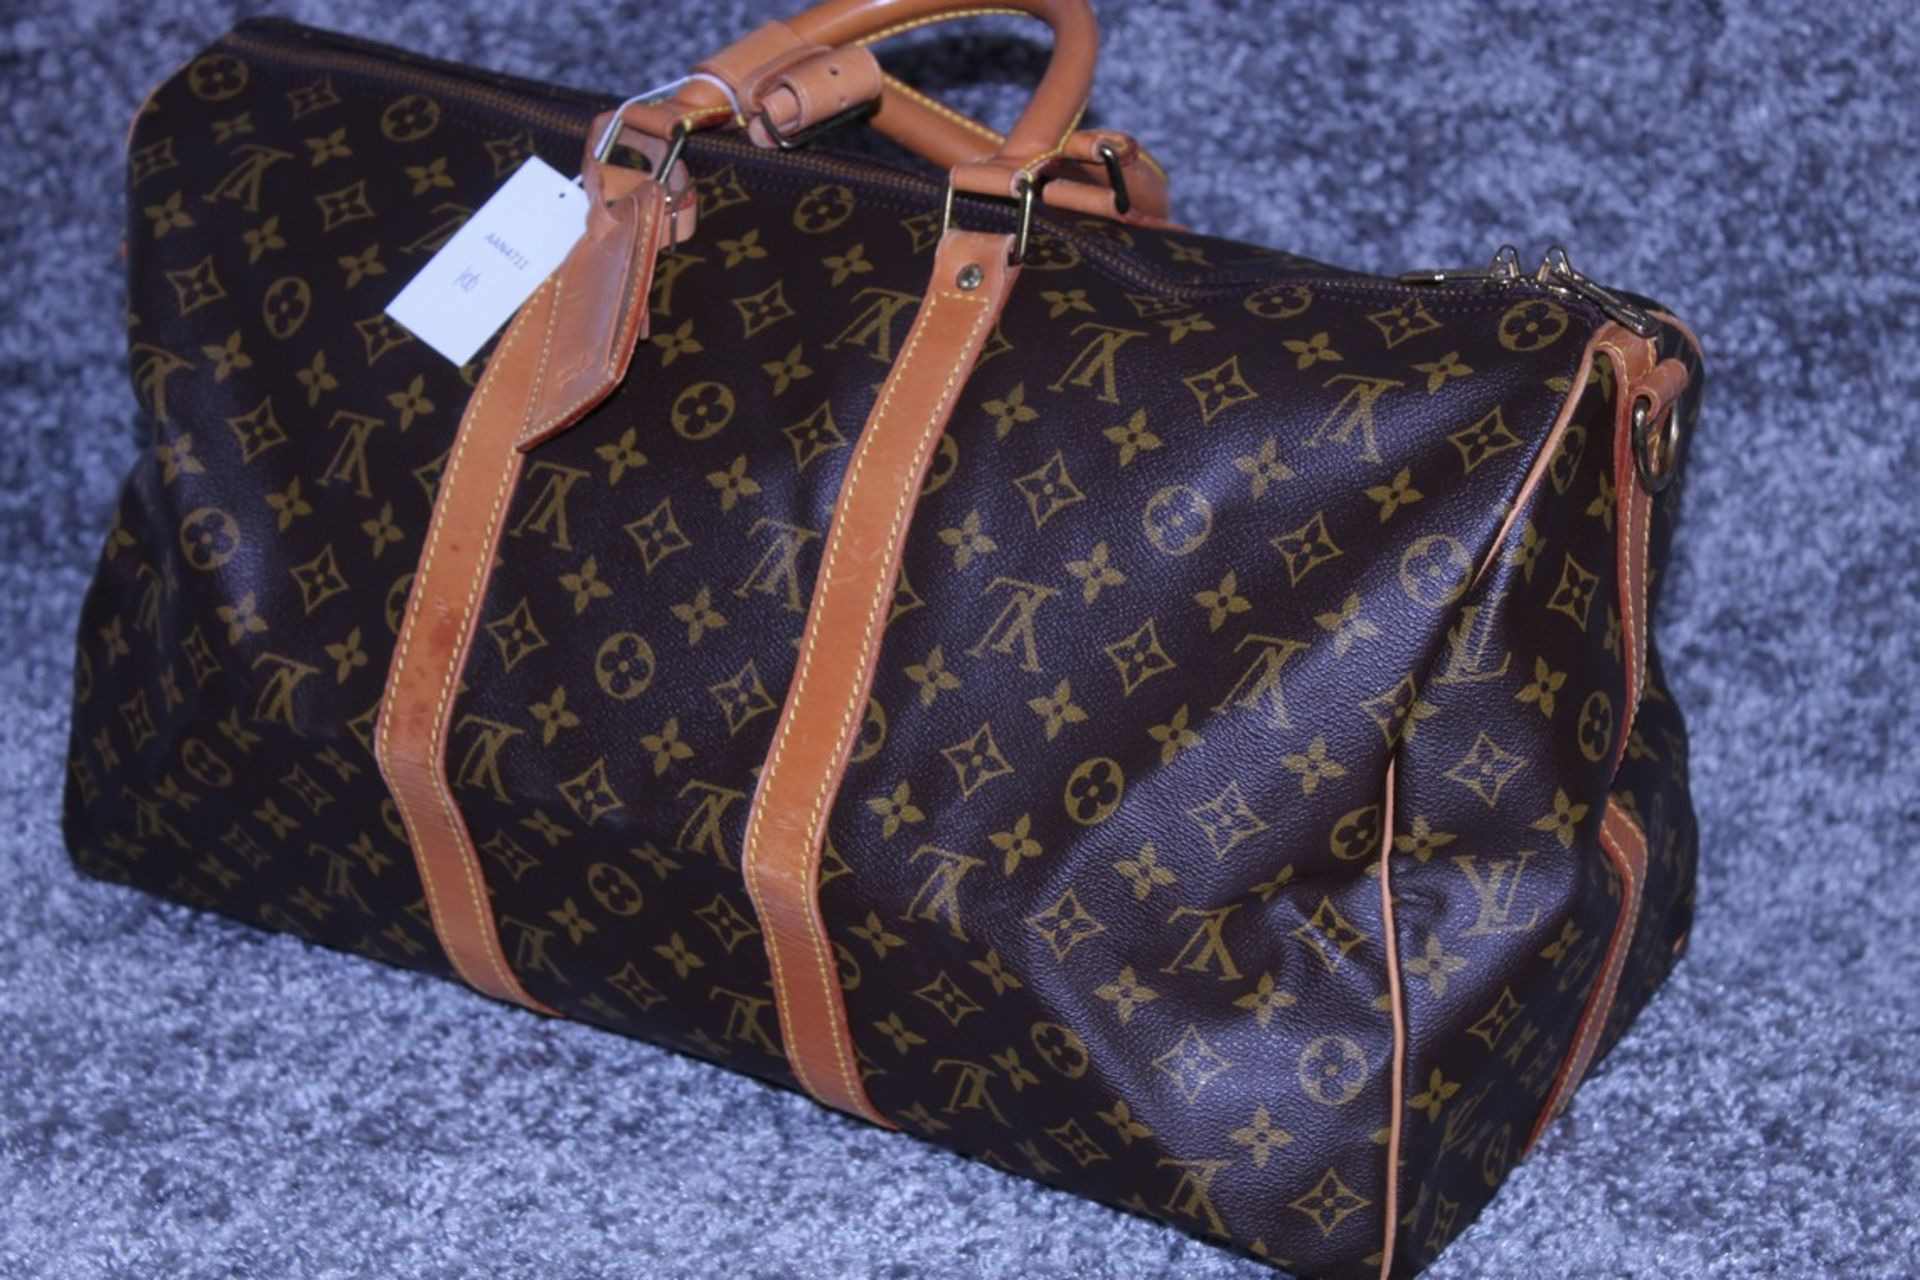 RRP 2,000 Louis Vuitton Keepall 50 Bandouliere Shoulder Bag, Brown Coated Canvas Monogram, - Image 3 of 6